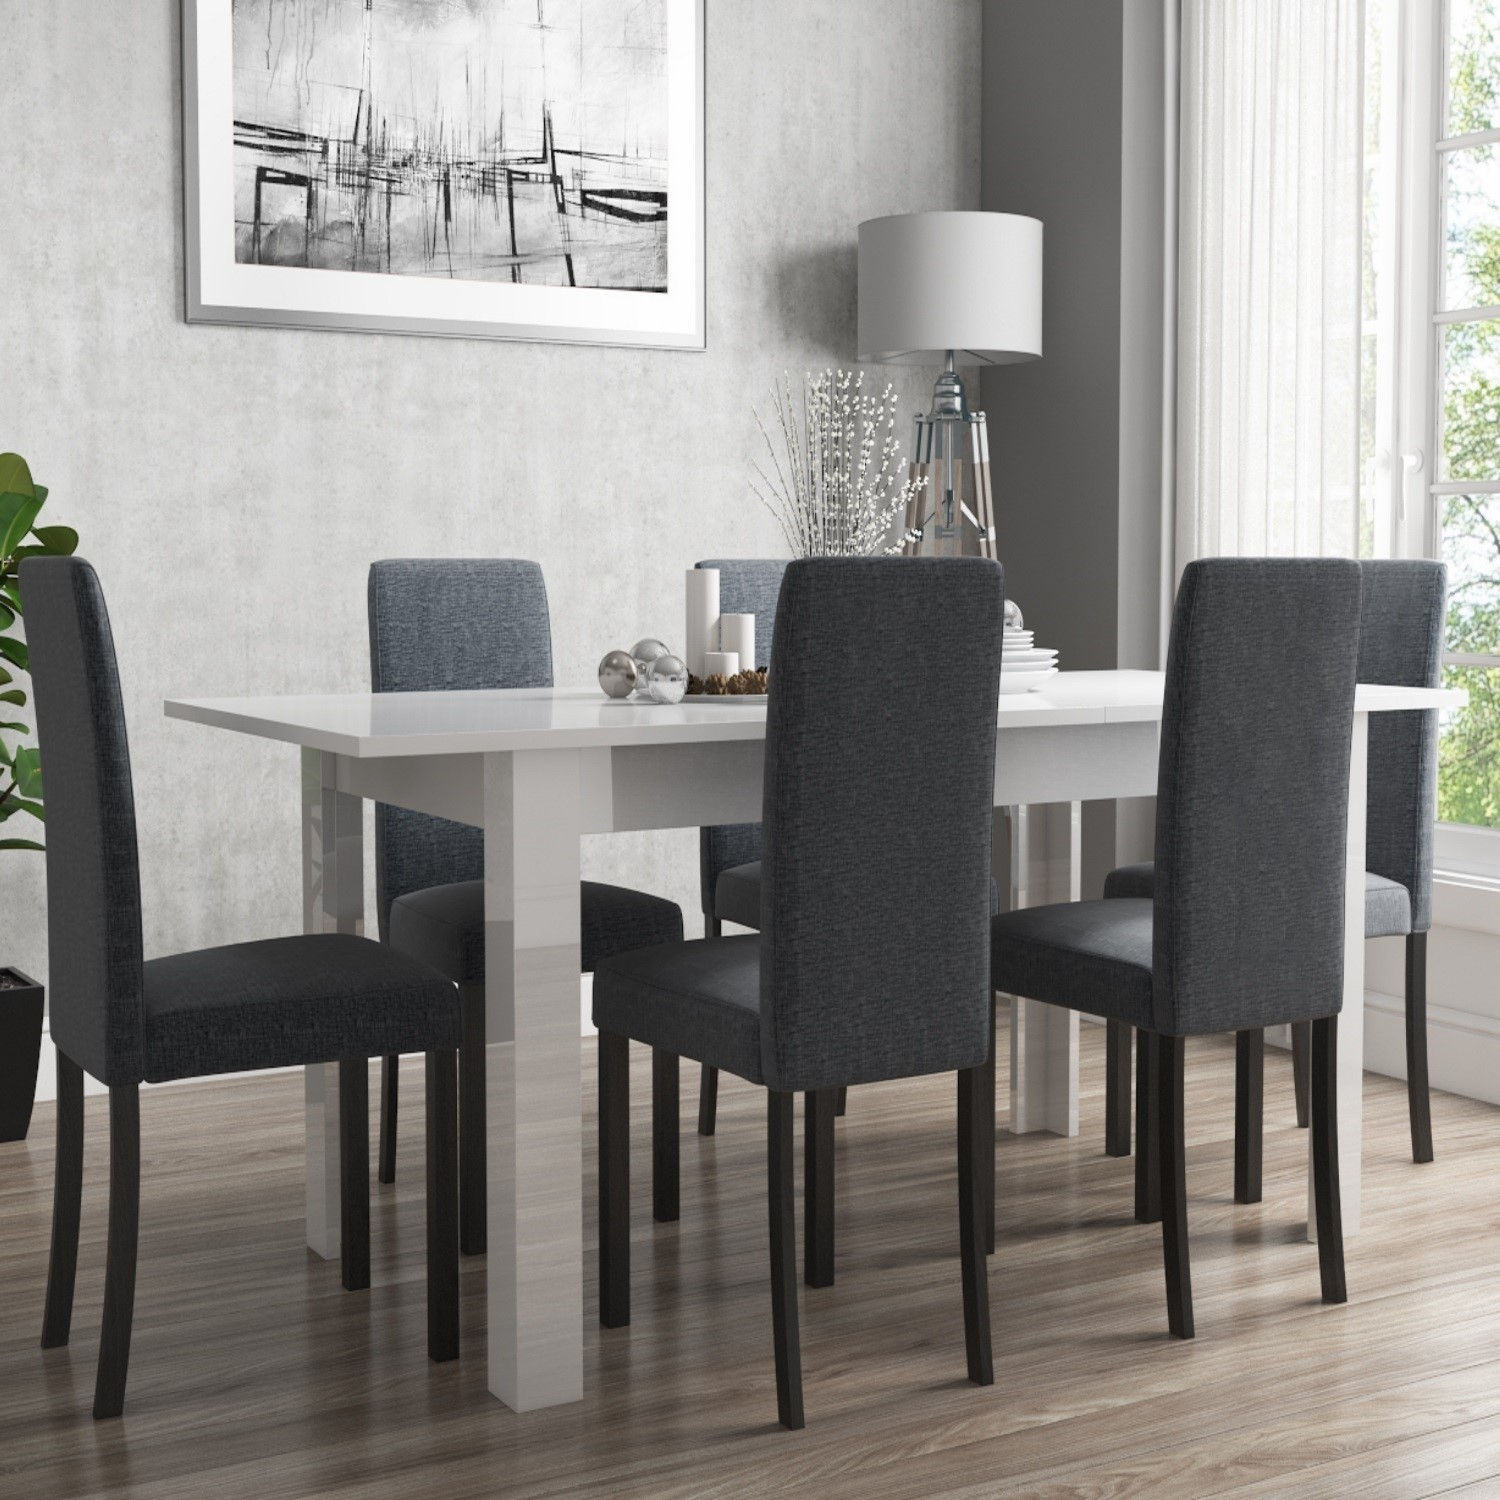 vivienne extendable white high gloss dining table 8 slate grey rh furniture123 co uk